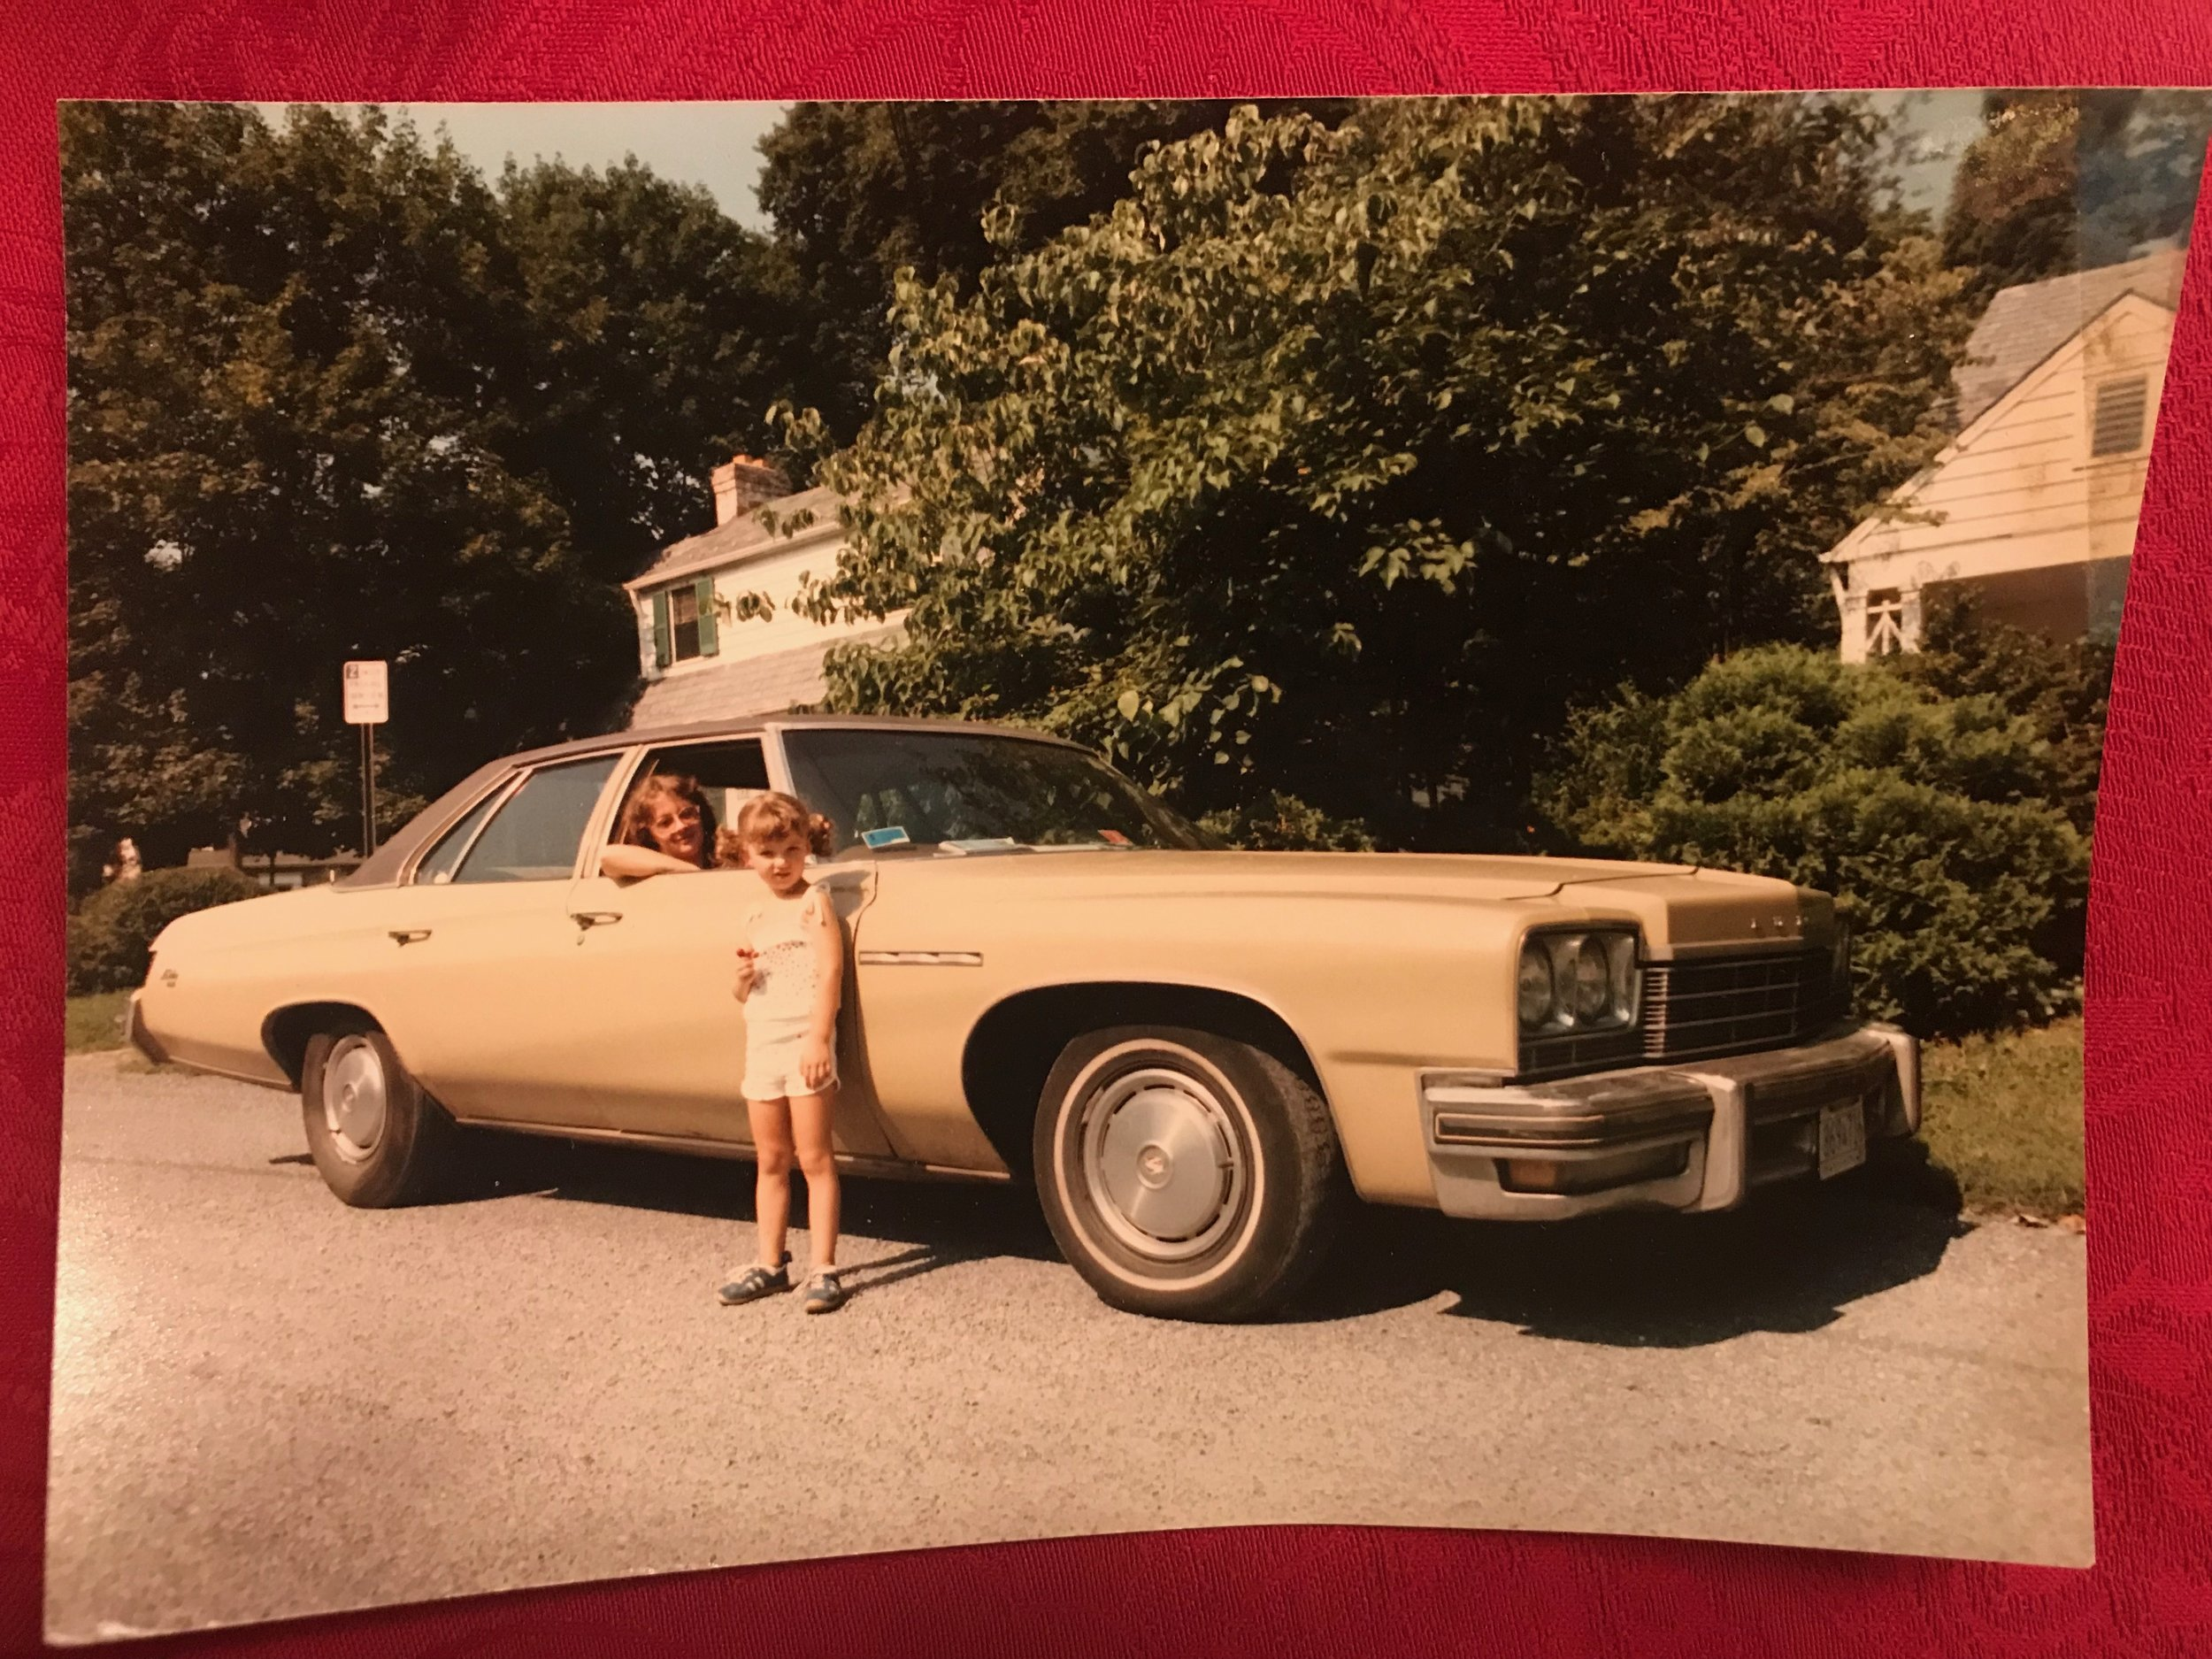 """Me and my mom in 1984, big pimpin' in our 1978 Buick LeSabre. Having just arrived in the States from Poland, we were on a cross-country road trip to see what this great nation was made of. It was such a boat that my 5'3"""" mom could take naps fully stretched out in the back seat as we cruised along."""